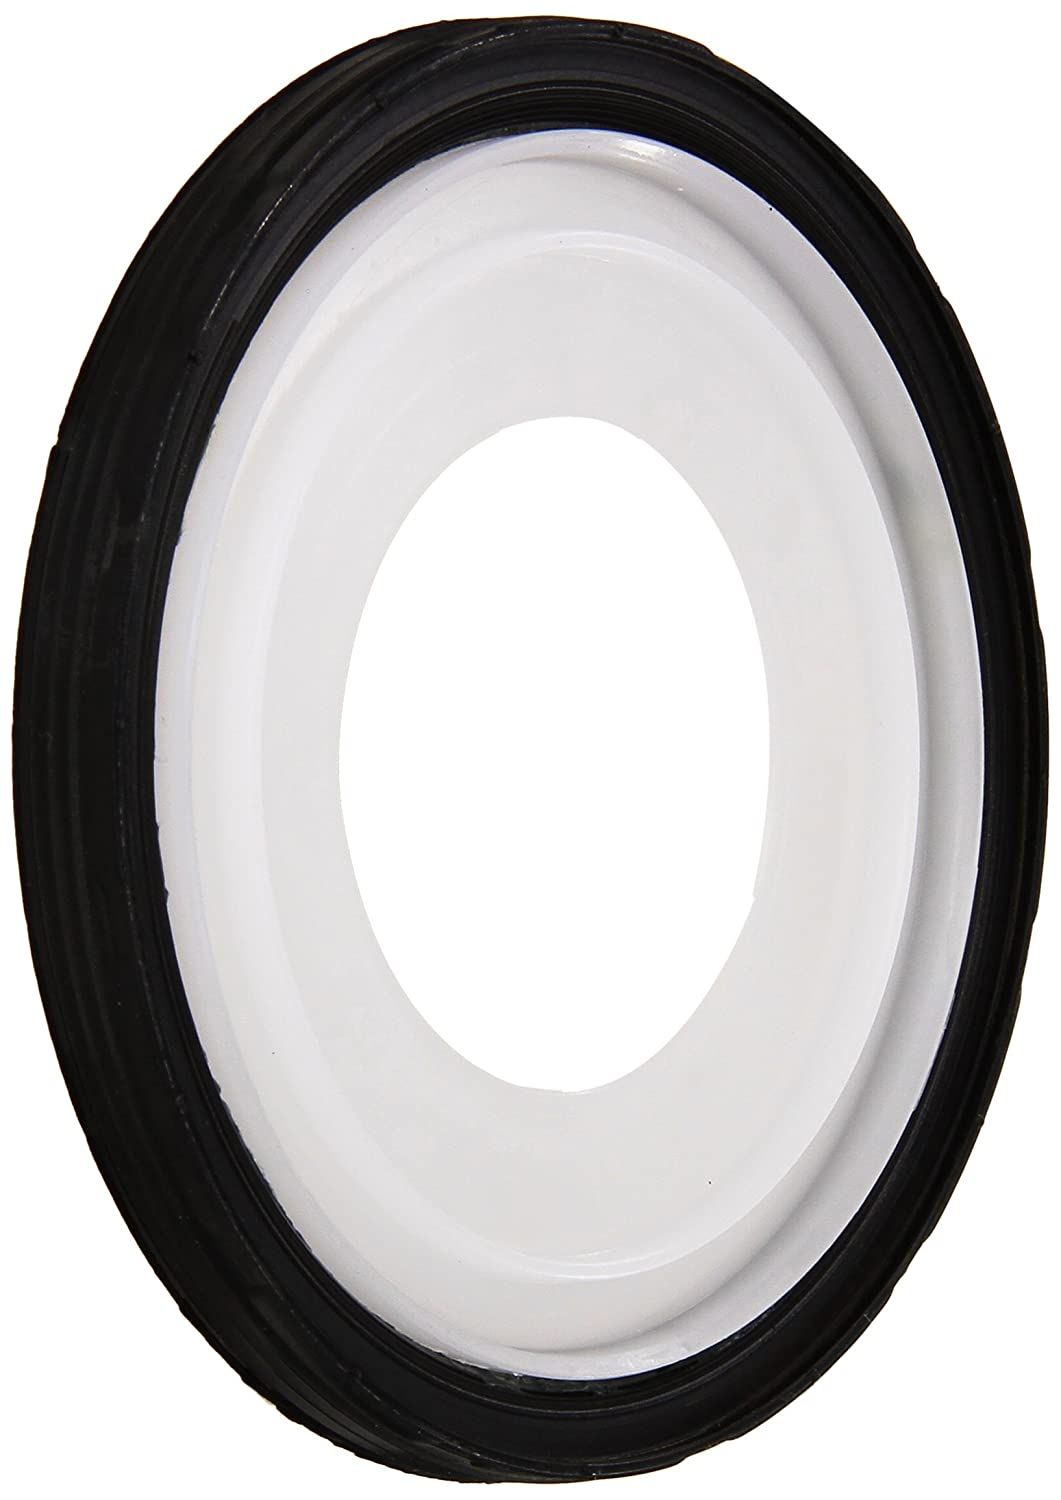 GM Parts 89060436 Rear Main Seal for LS Engines GM Performance